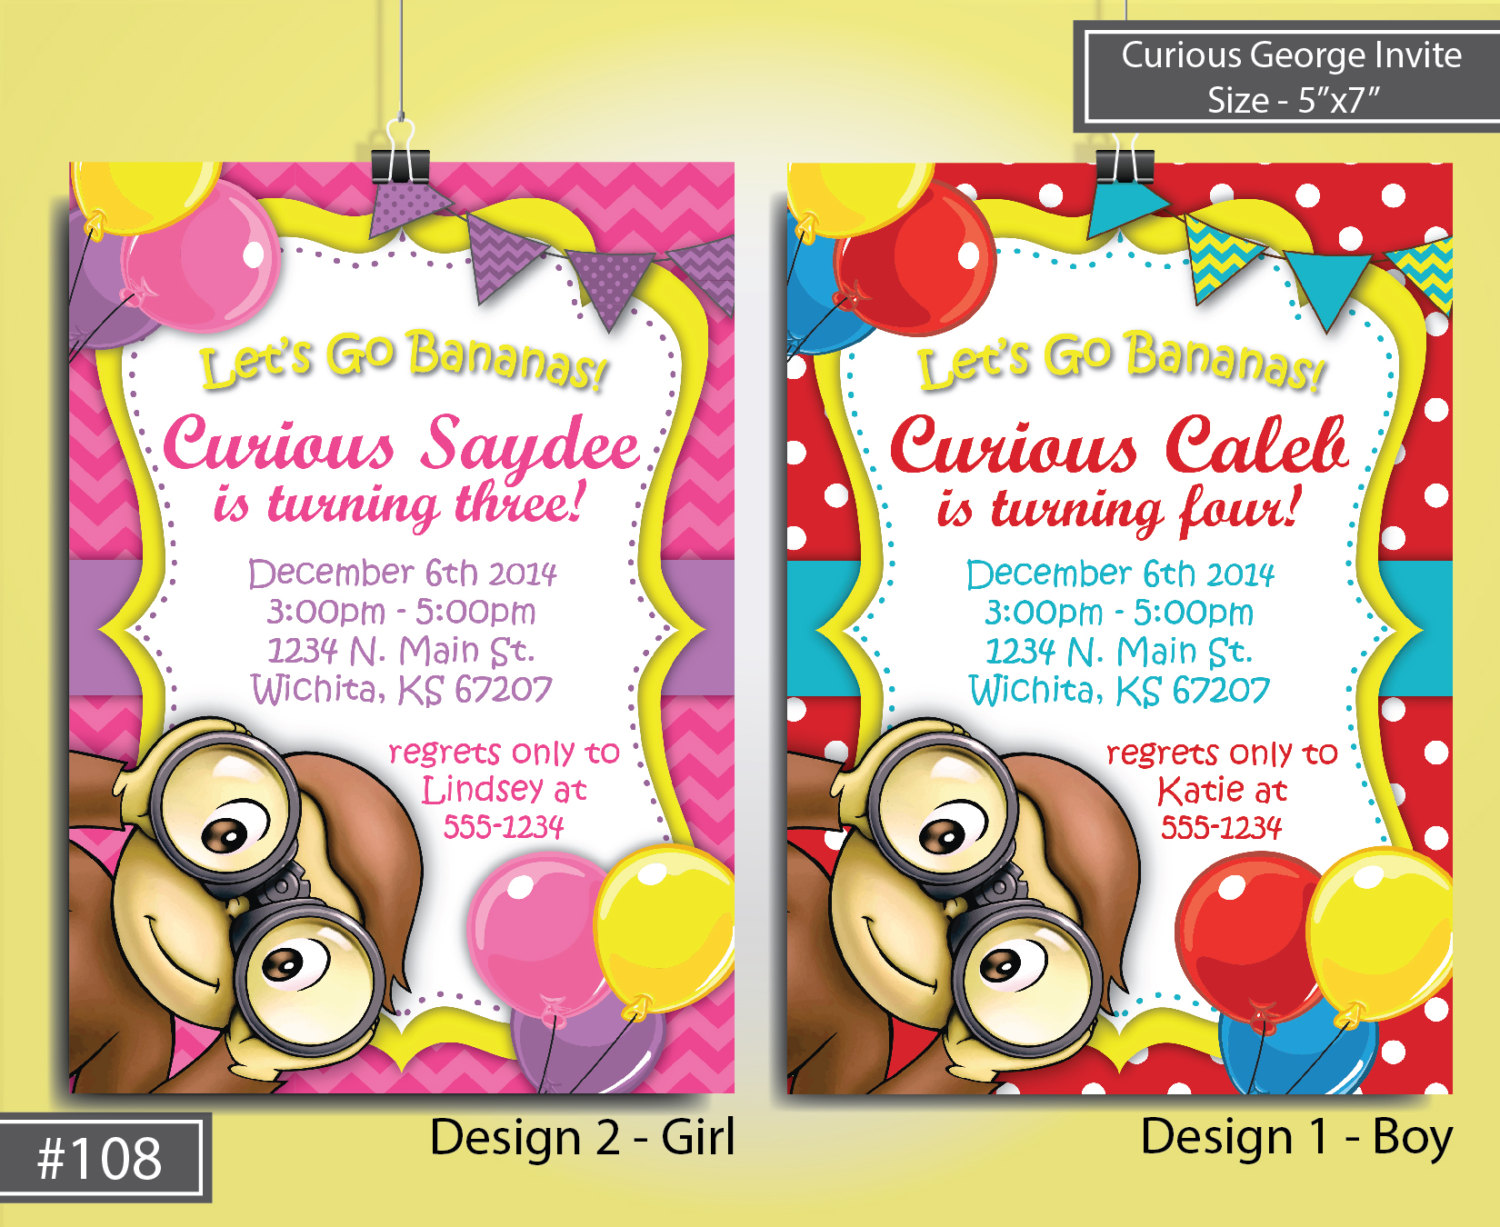 curious george birthday invitation template ; curious-george-birthday-invitations-for-the-invitations-design-of-your-inspiration-Birthday-Invitation-Templates-party-6